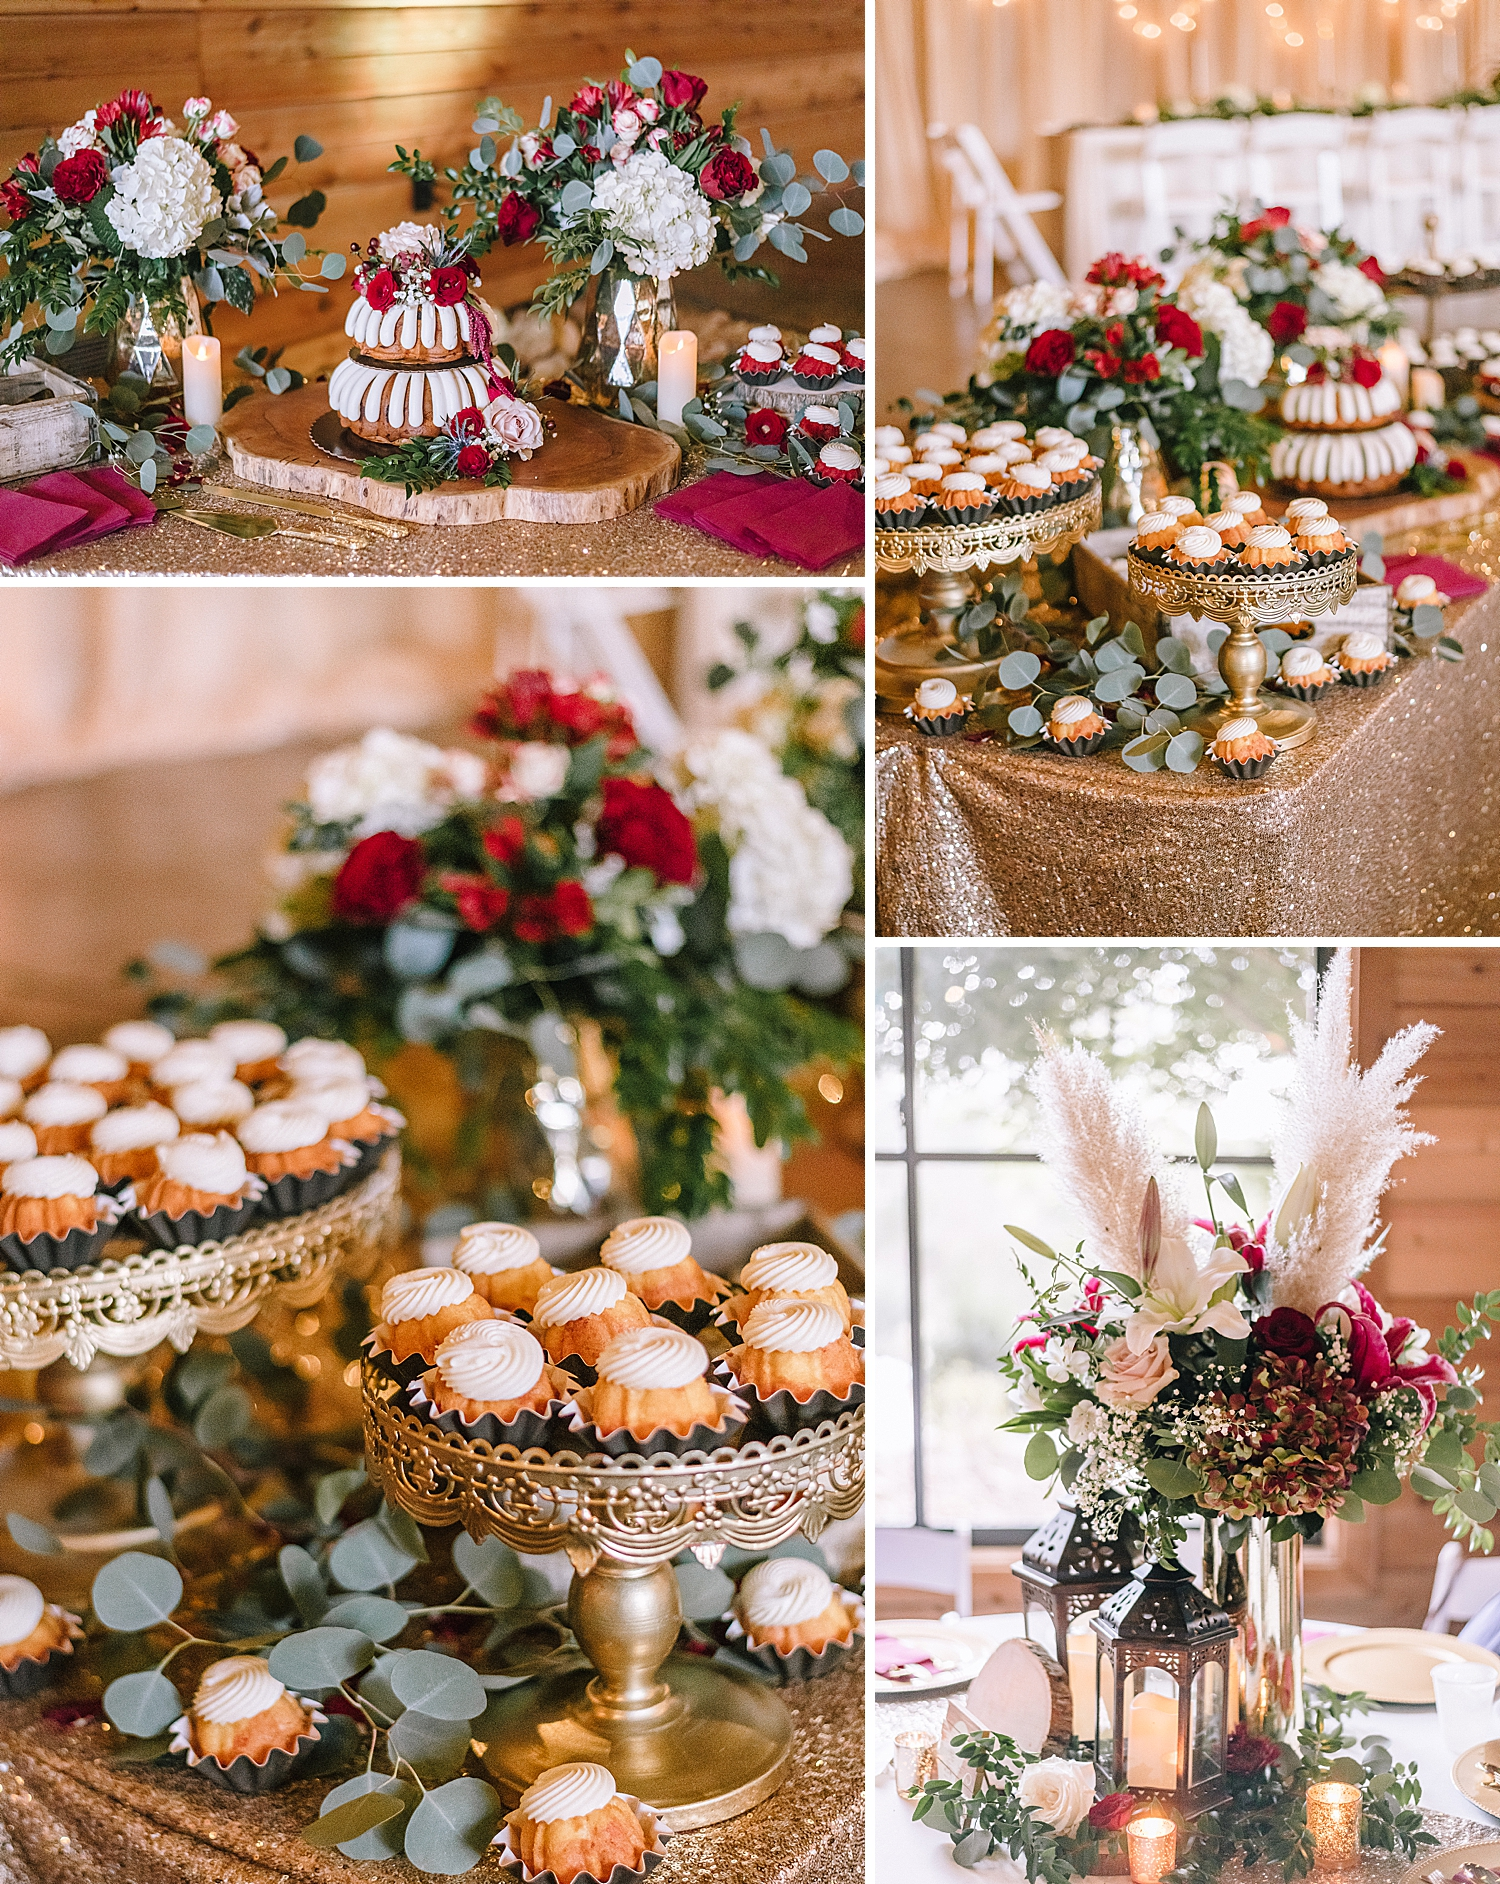 Geronimo-Oaks-Wedding-Venue-Seguin-Texas-Elegant-Navy-Burgundy-Wedding-Carly-Barton-Photography_0006.jpg